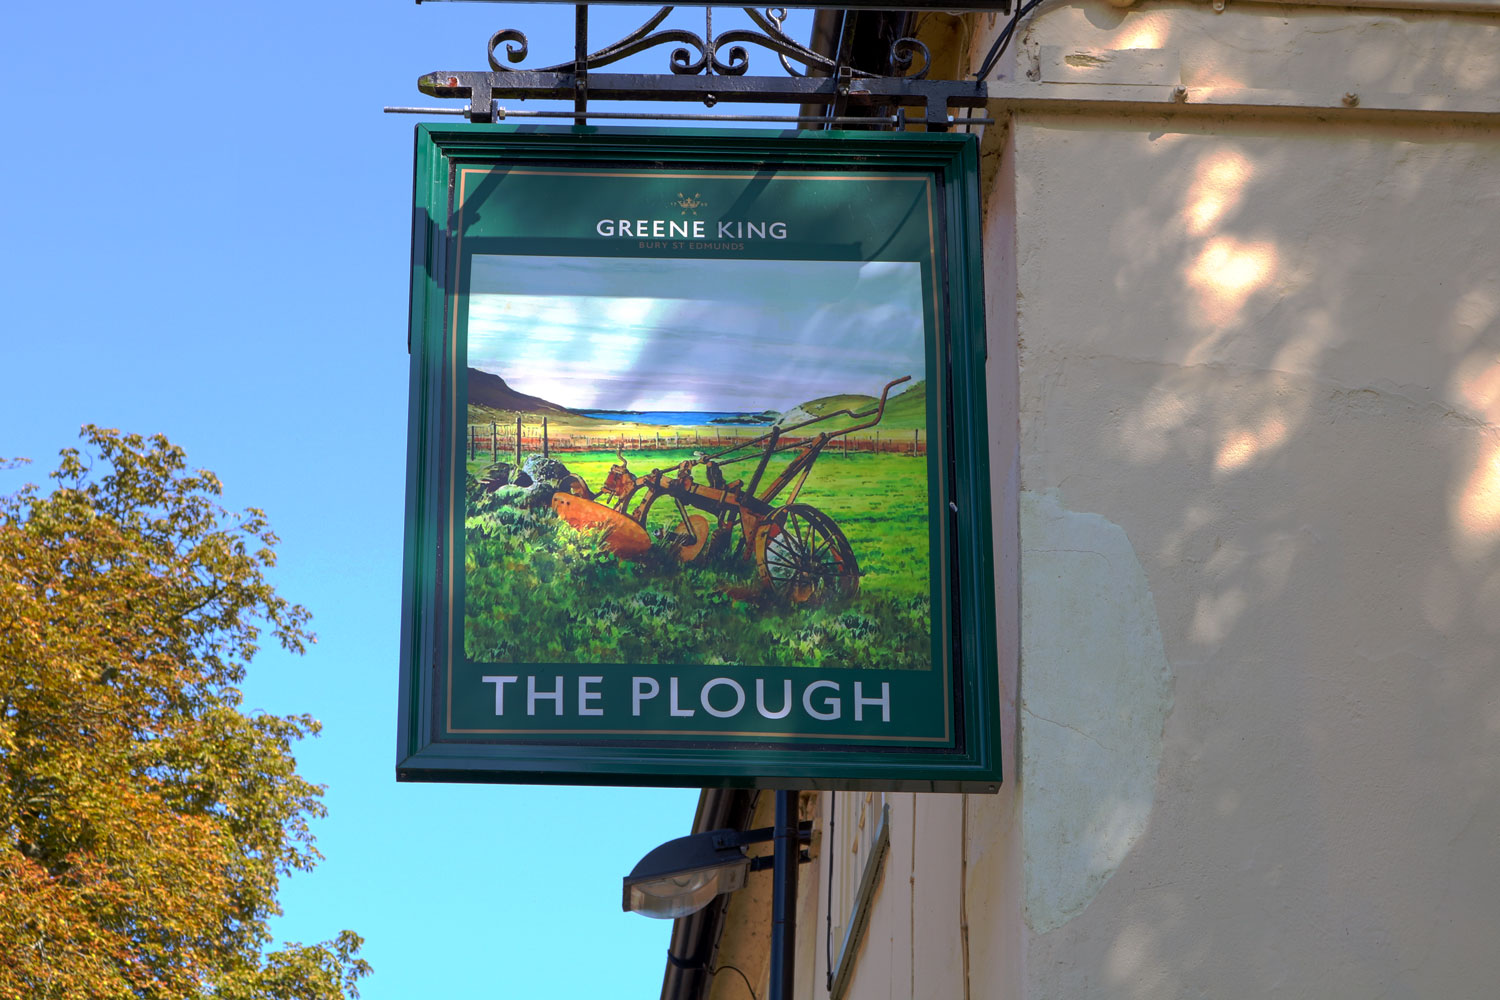 The Plough - Sign Outside of Building